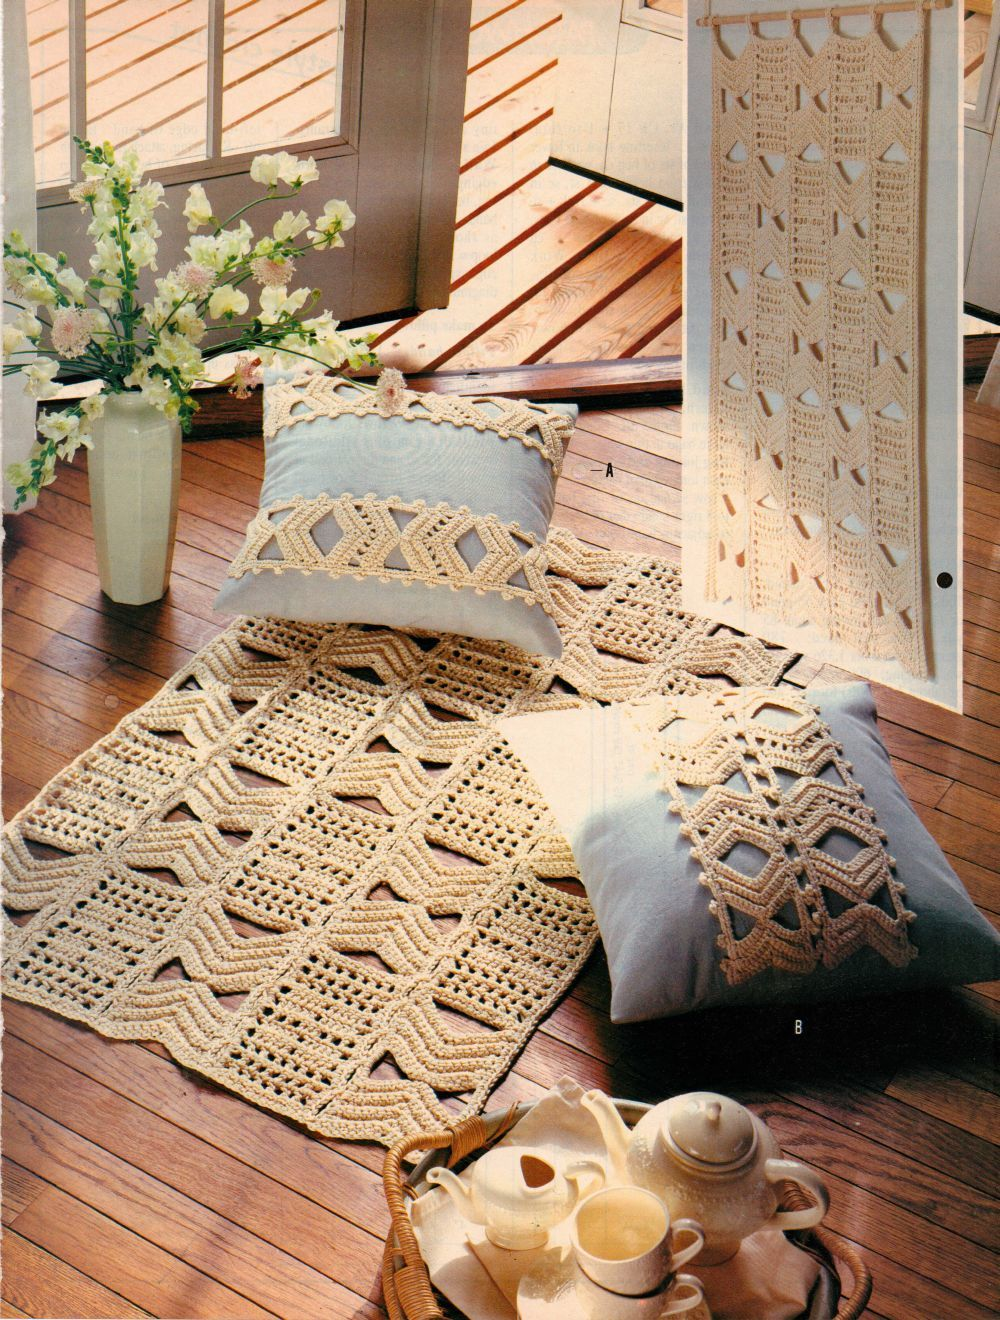 Quadrille Wall Hanging Rug Pillows Optical Illusion Table Topper Crochet Pattern